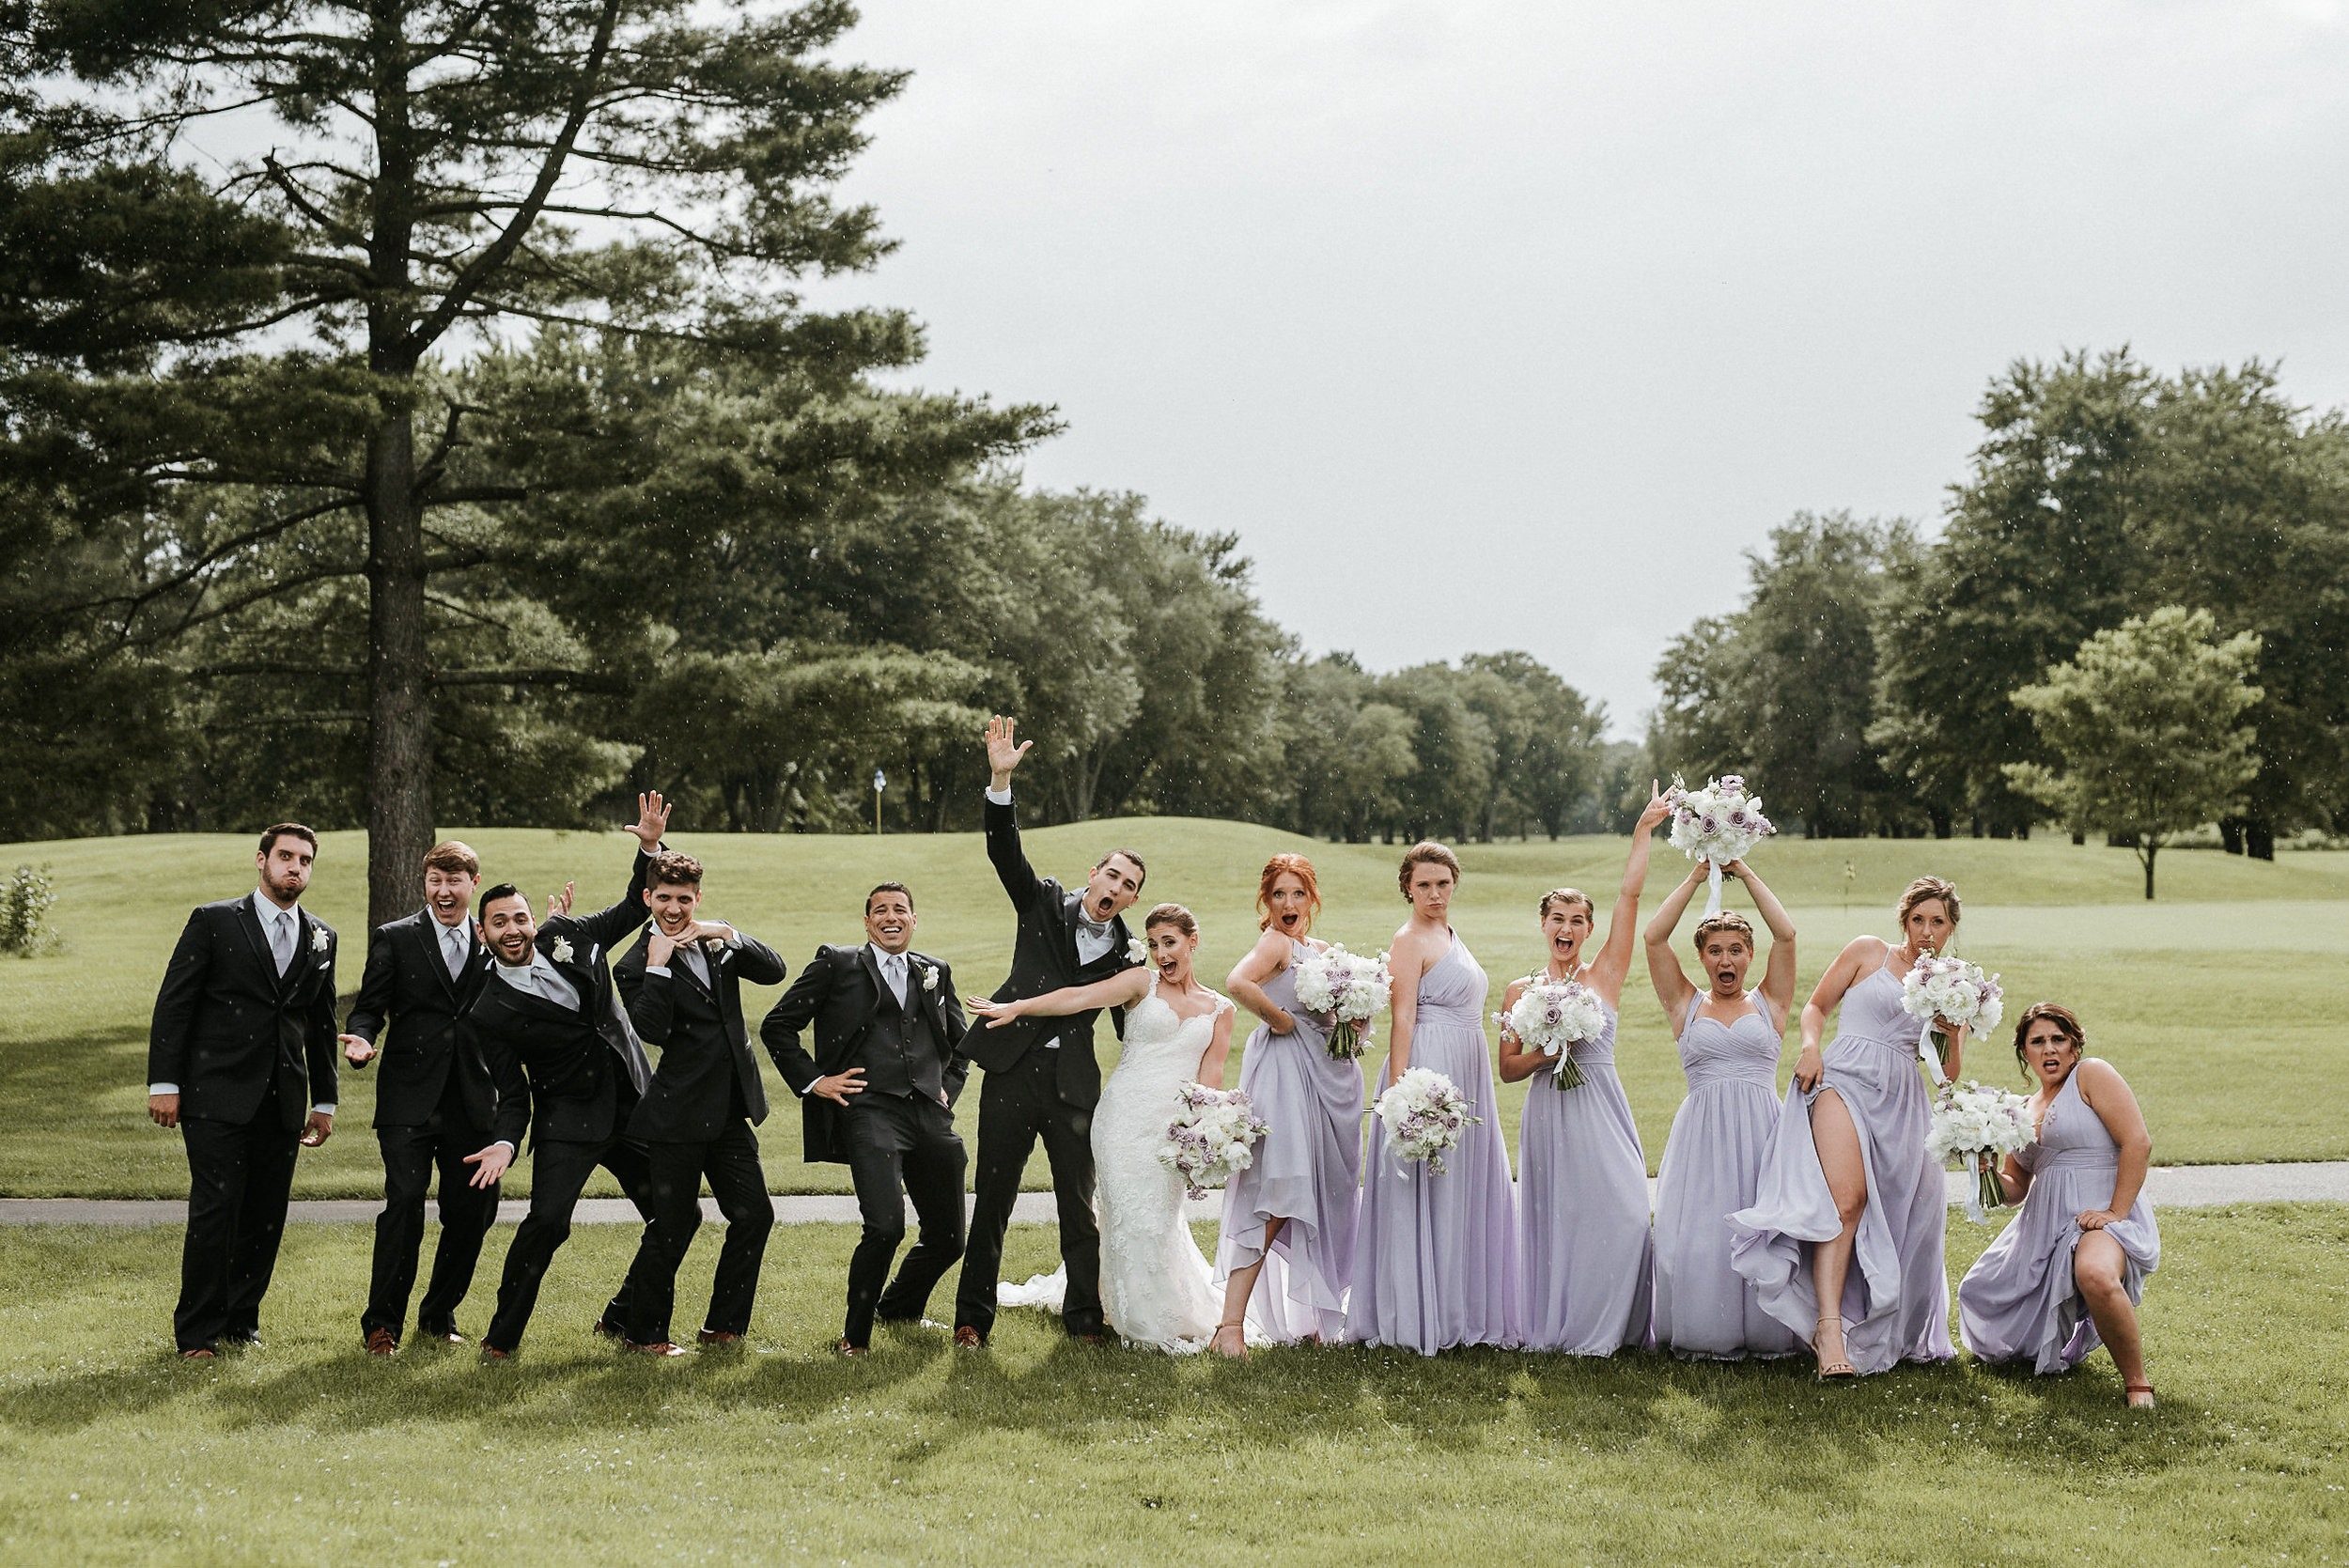 Bridal party funny photo on golf course